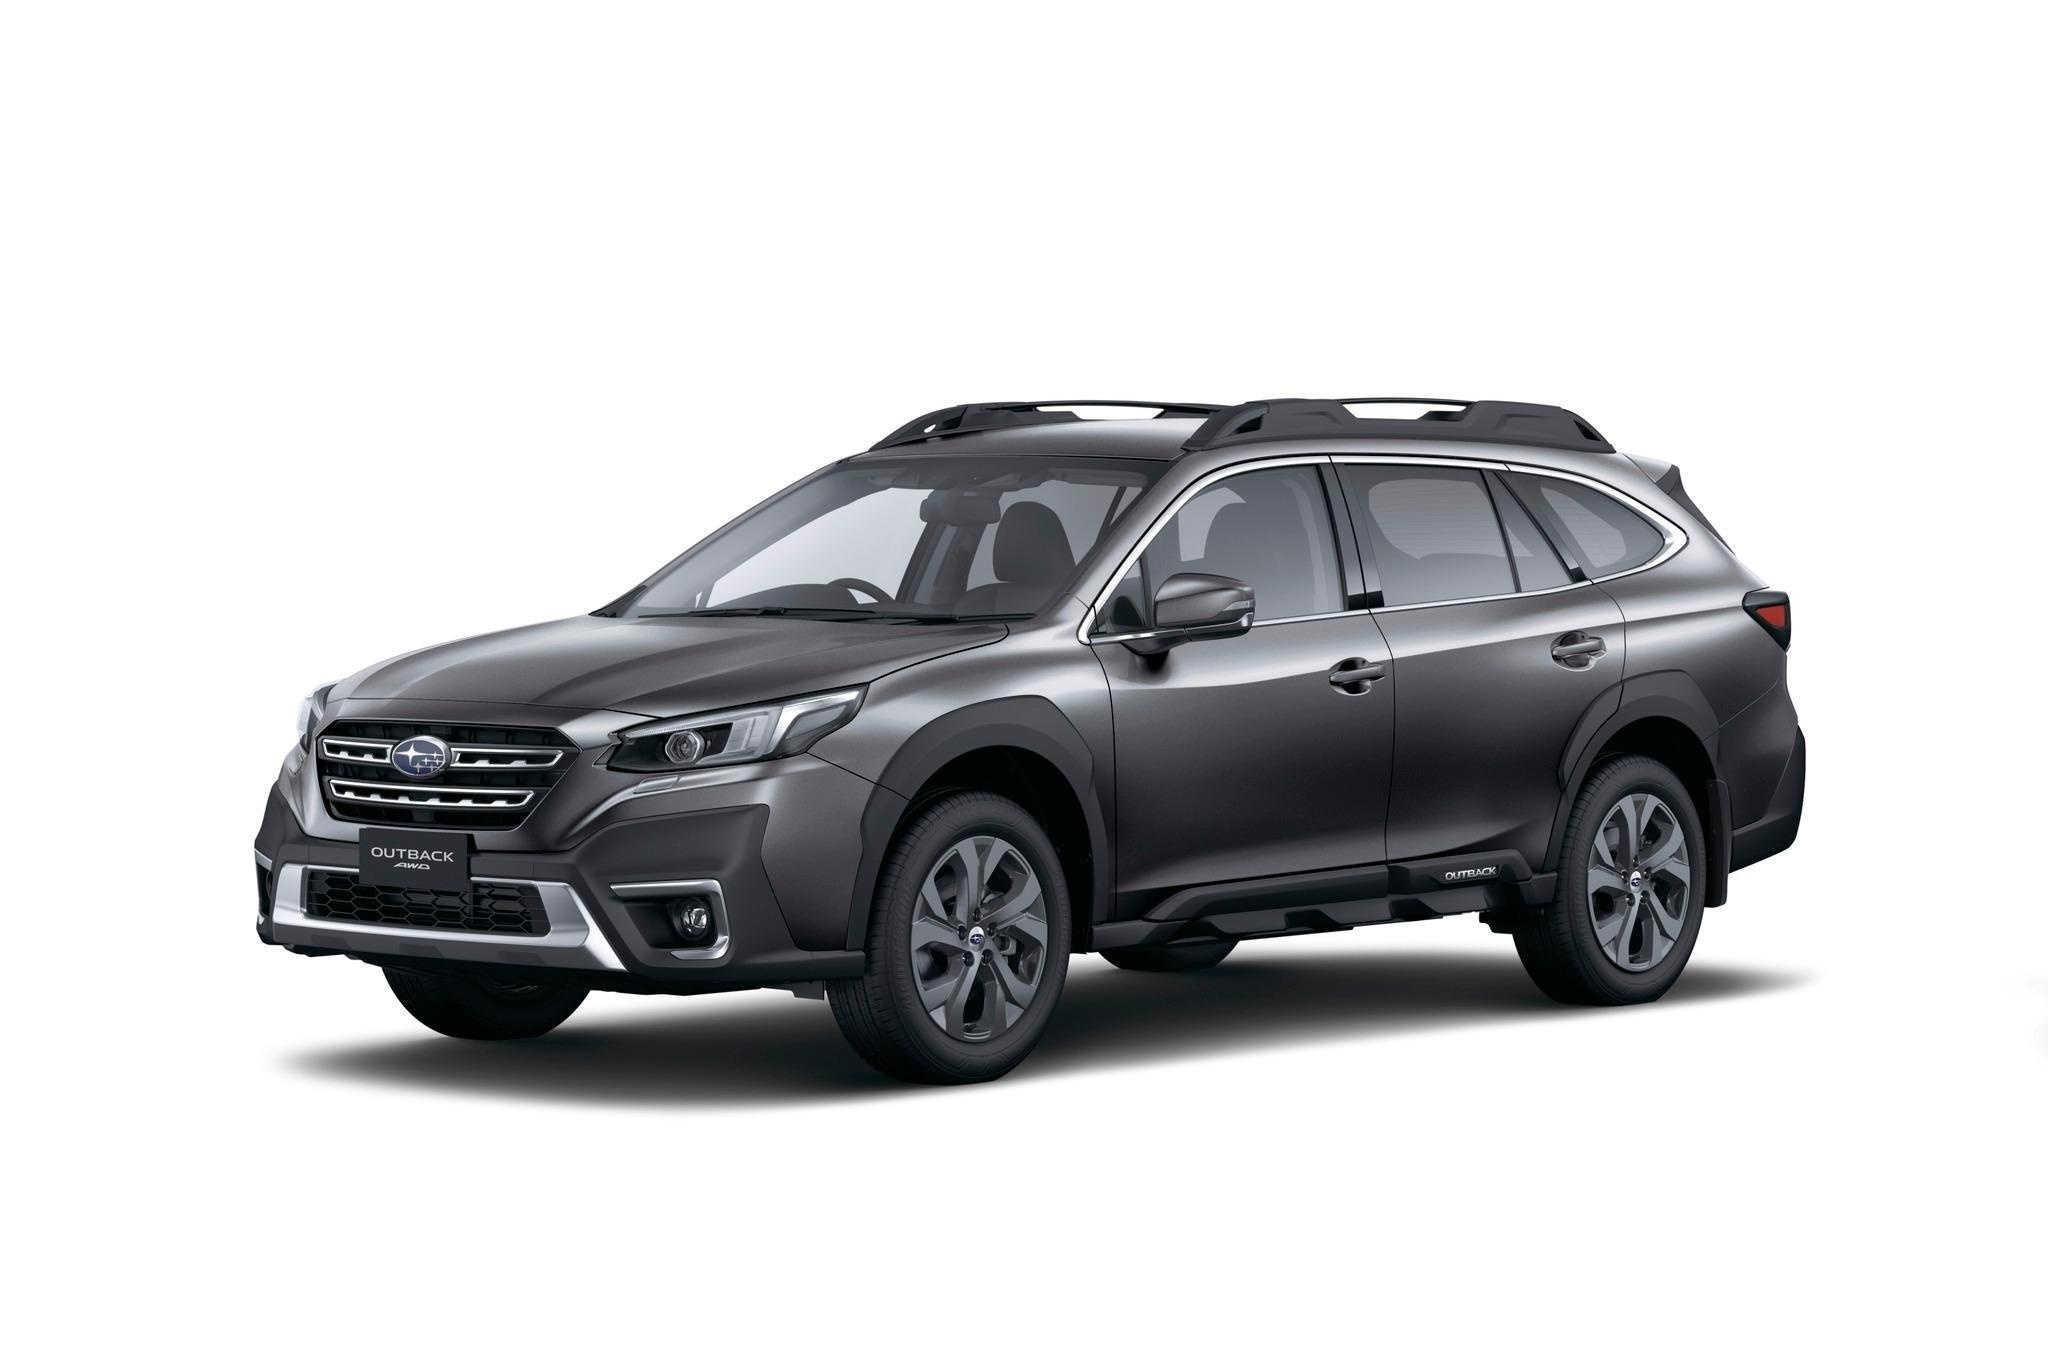 2021 Subaru Outback AWD MY21 / Automatic (CVT) / Wagon / 2.5L / 4 Cylinder / Petrol / 4x4 / 4 door / Model Year '21 December release 08QF21